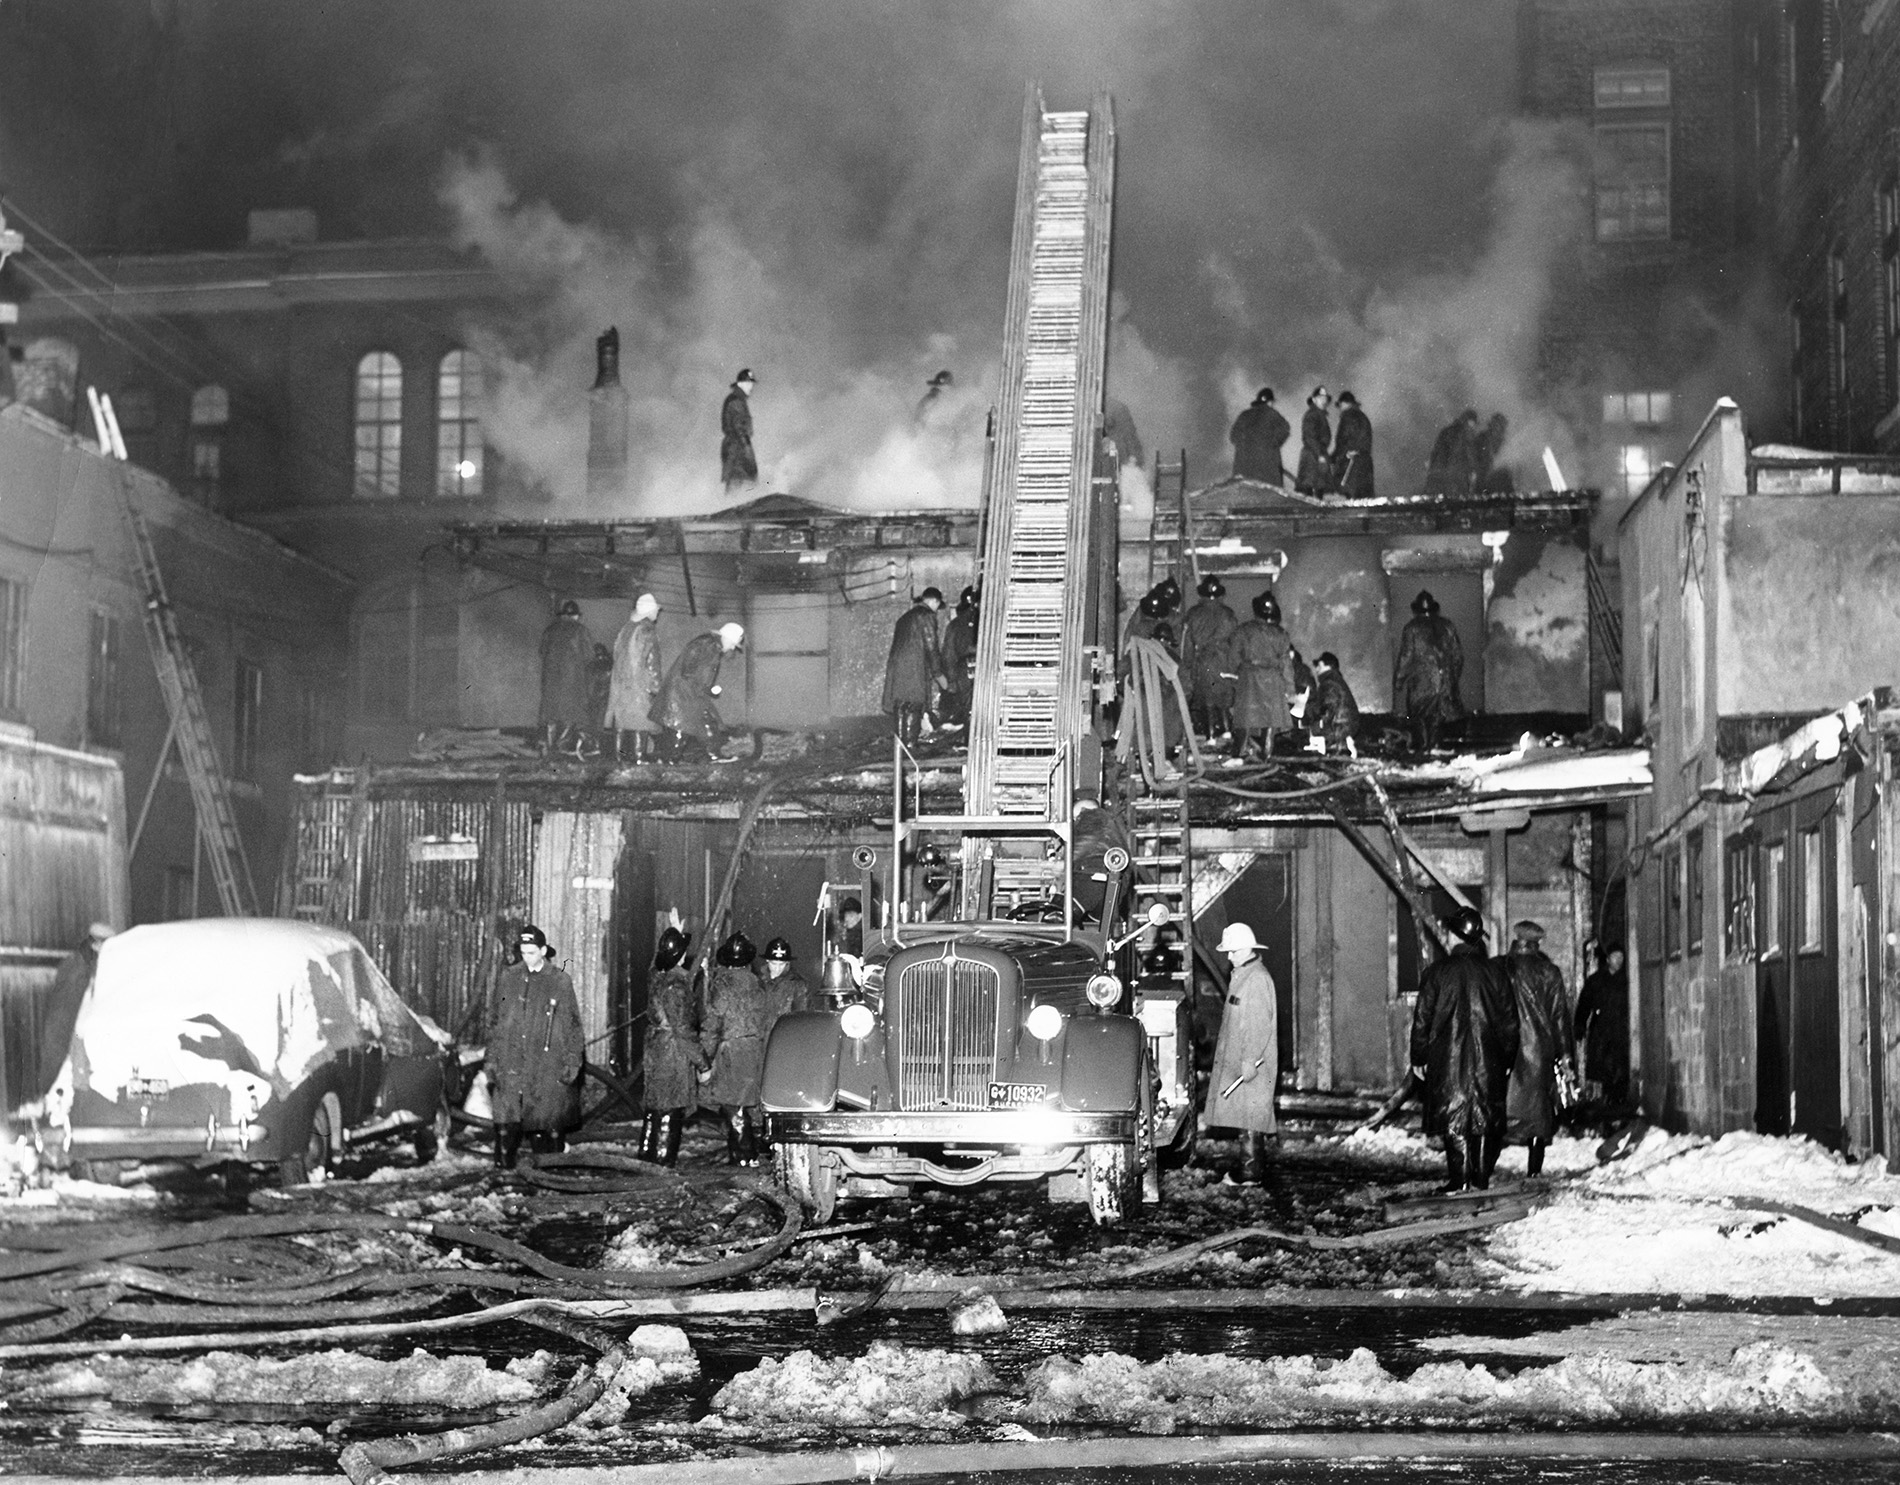 Dec 18 1955 box 1413 124 Dorchester West photo Réal St Jean La Presse